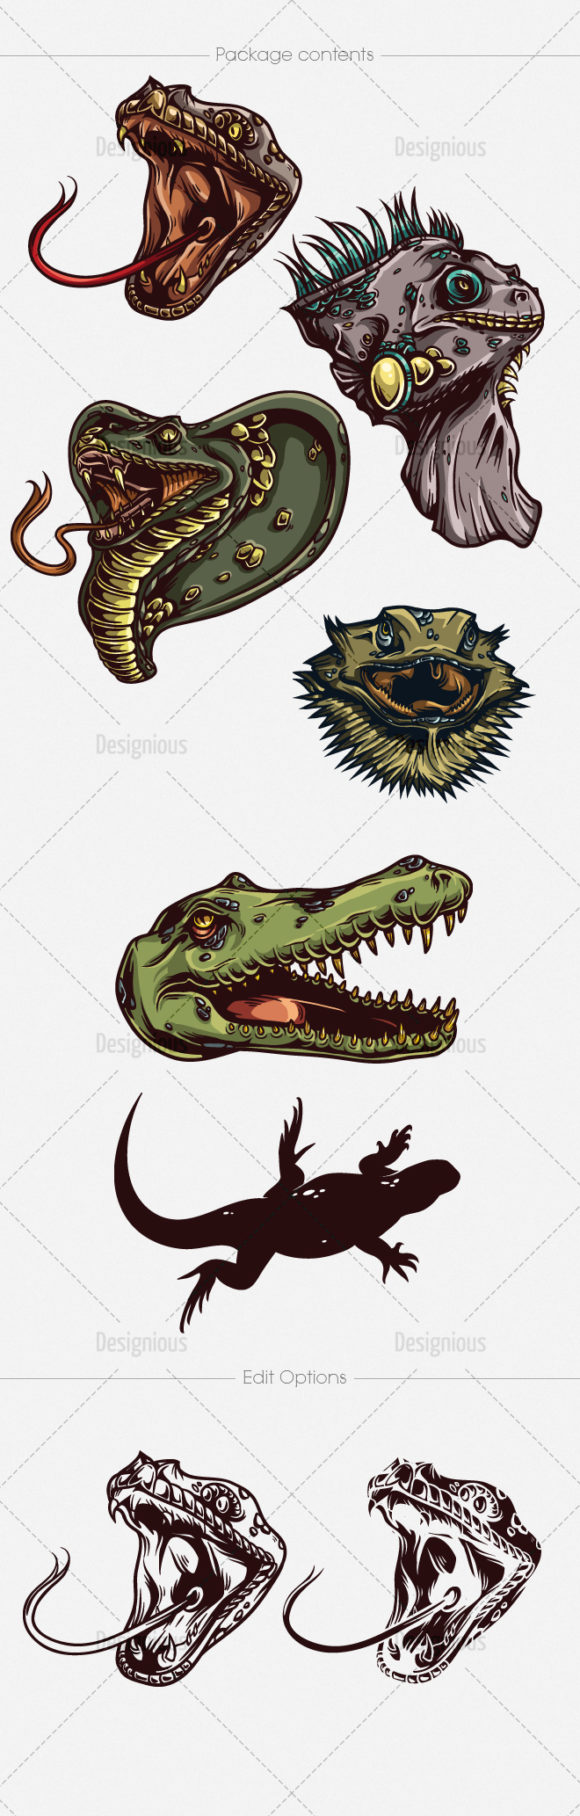 Reptiles Vector Pack 1 Nature [tag]